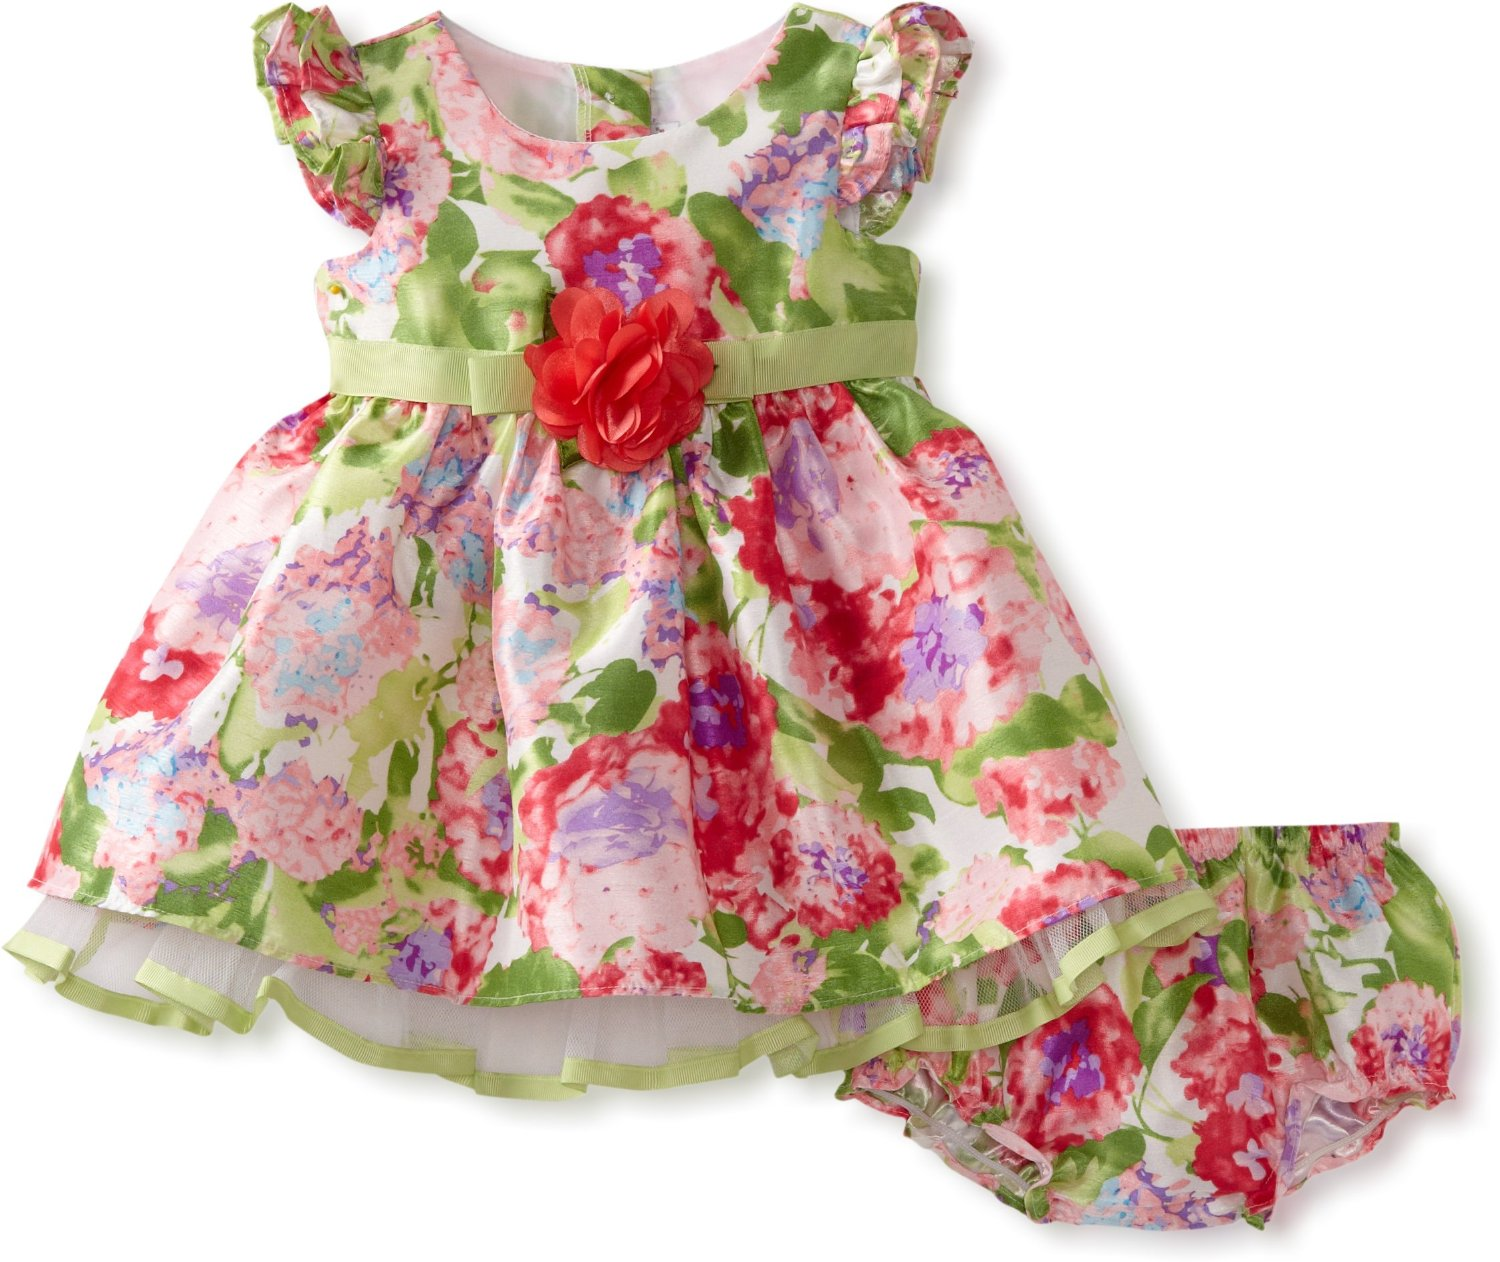 Girls hand smocked dresses, bishop style and Christening gowns in a collection of fine colorful fabrics like silk and piqué cotton at huge savings.